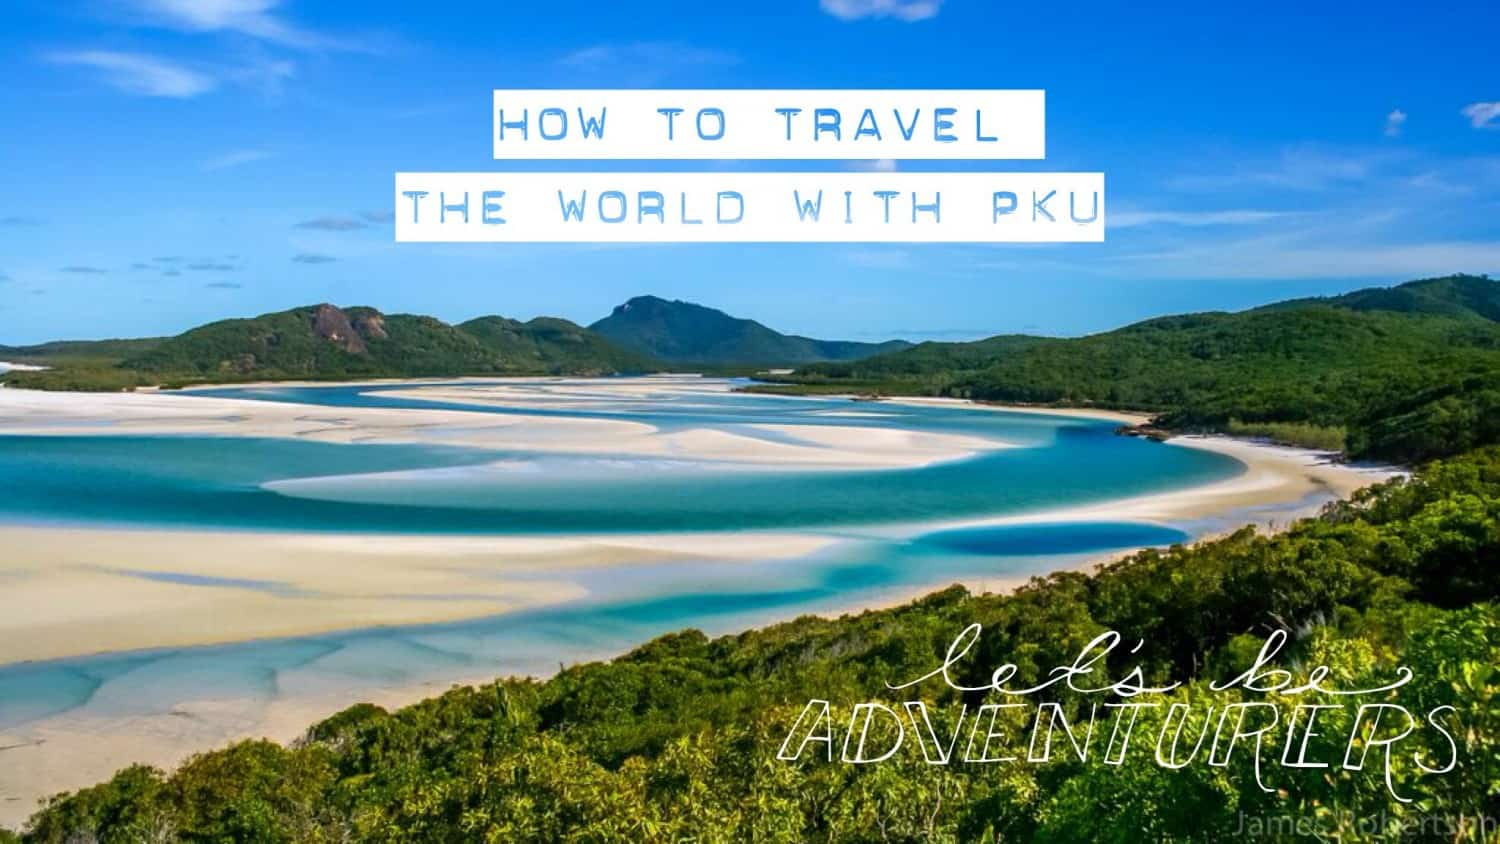 How to Travel the World with PKU